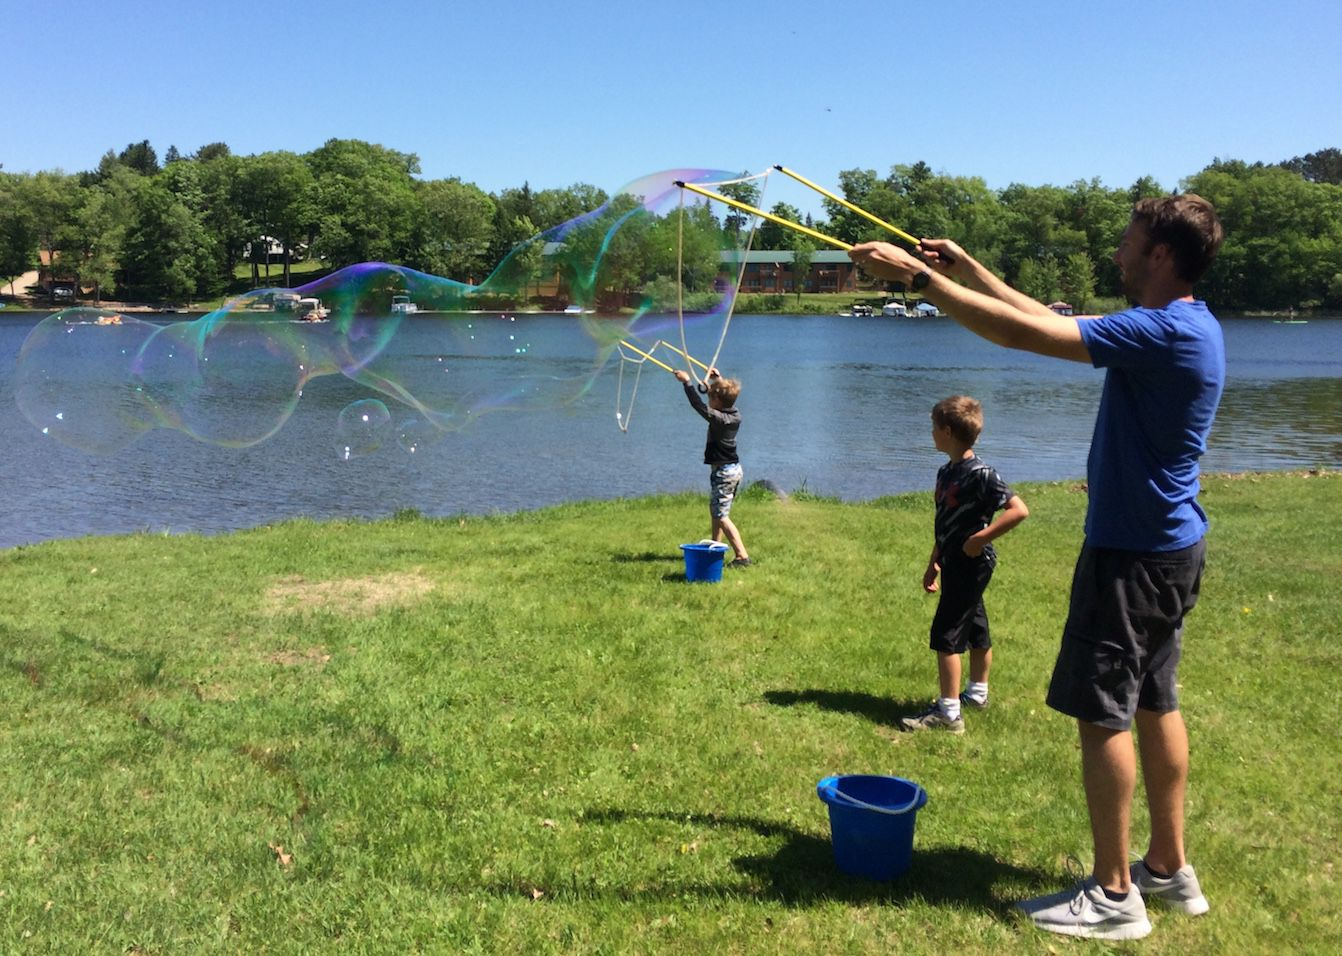 Island City's Celebration of Arts included bubbles